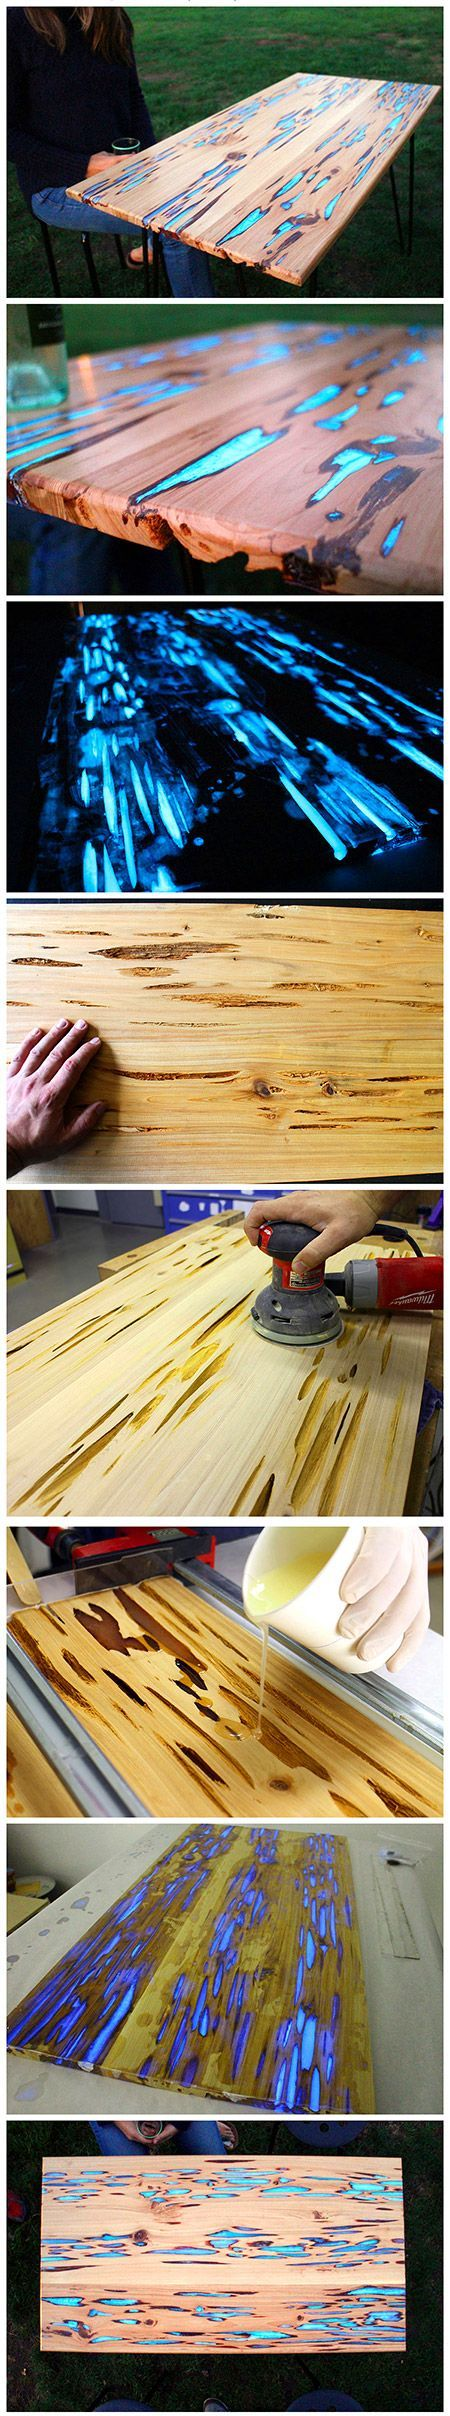 60 Creative Ways Of Recycling Old Wood                                                                                                                                                                                 More